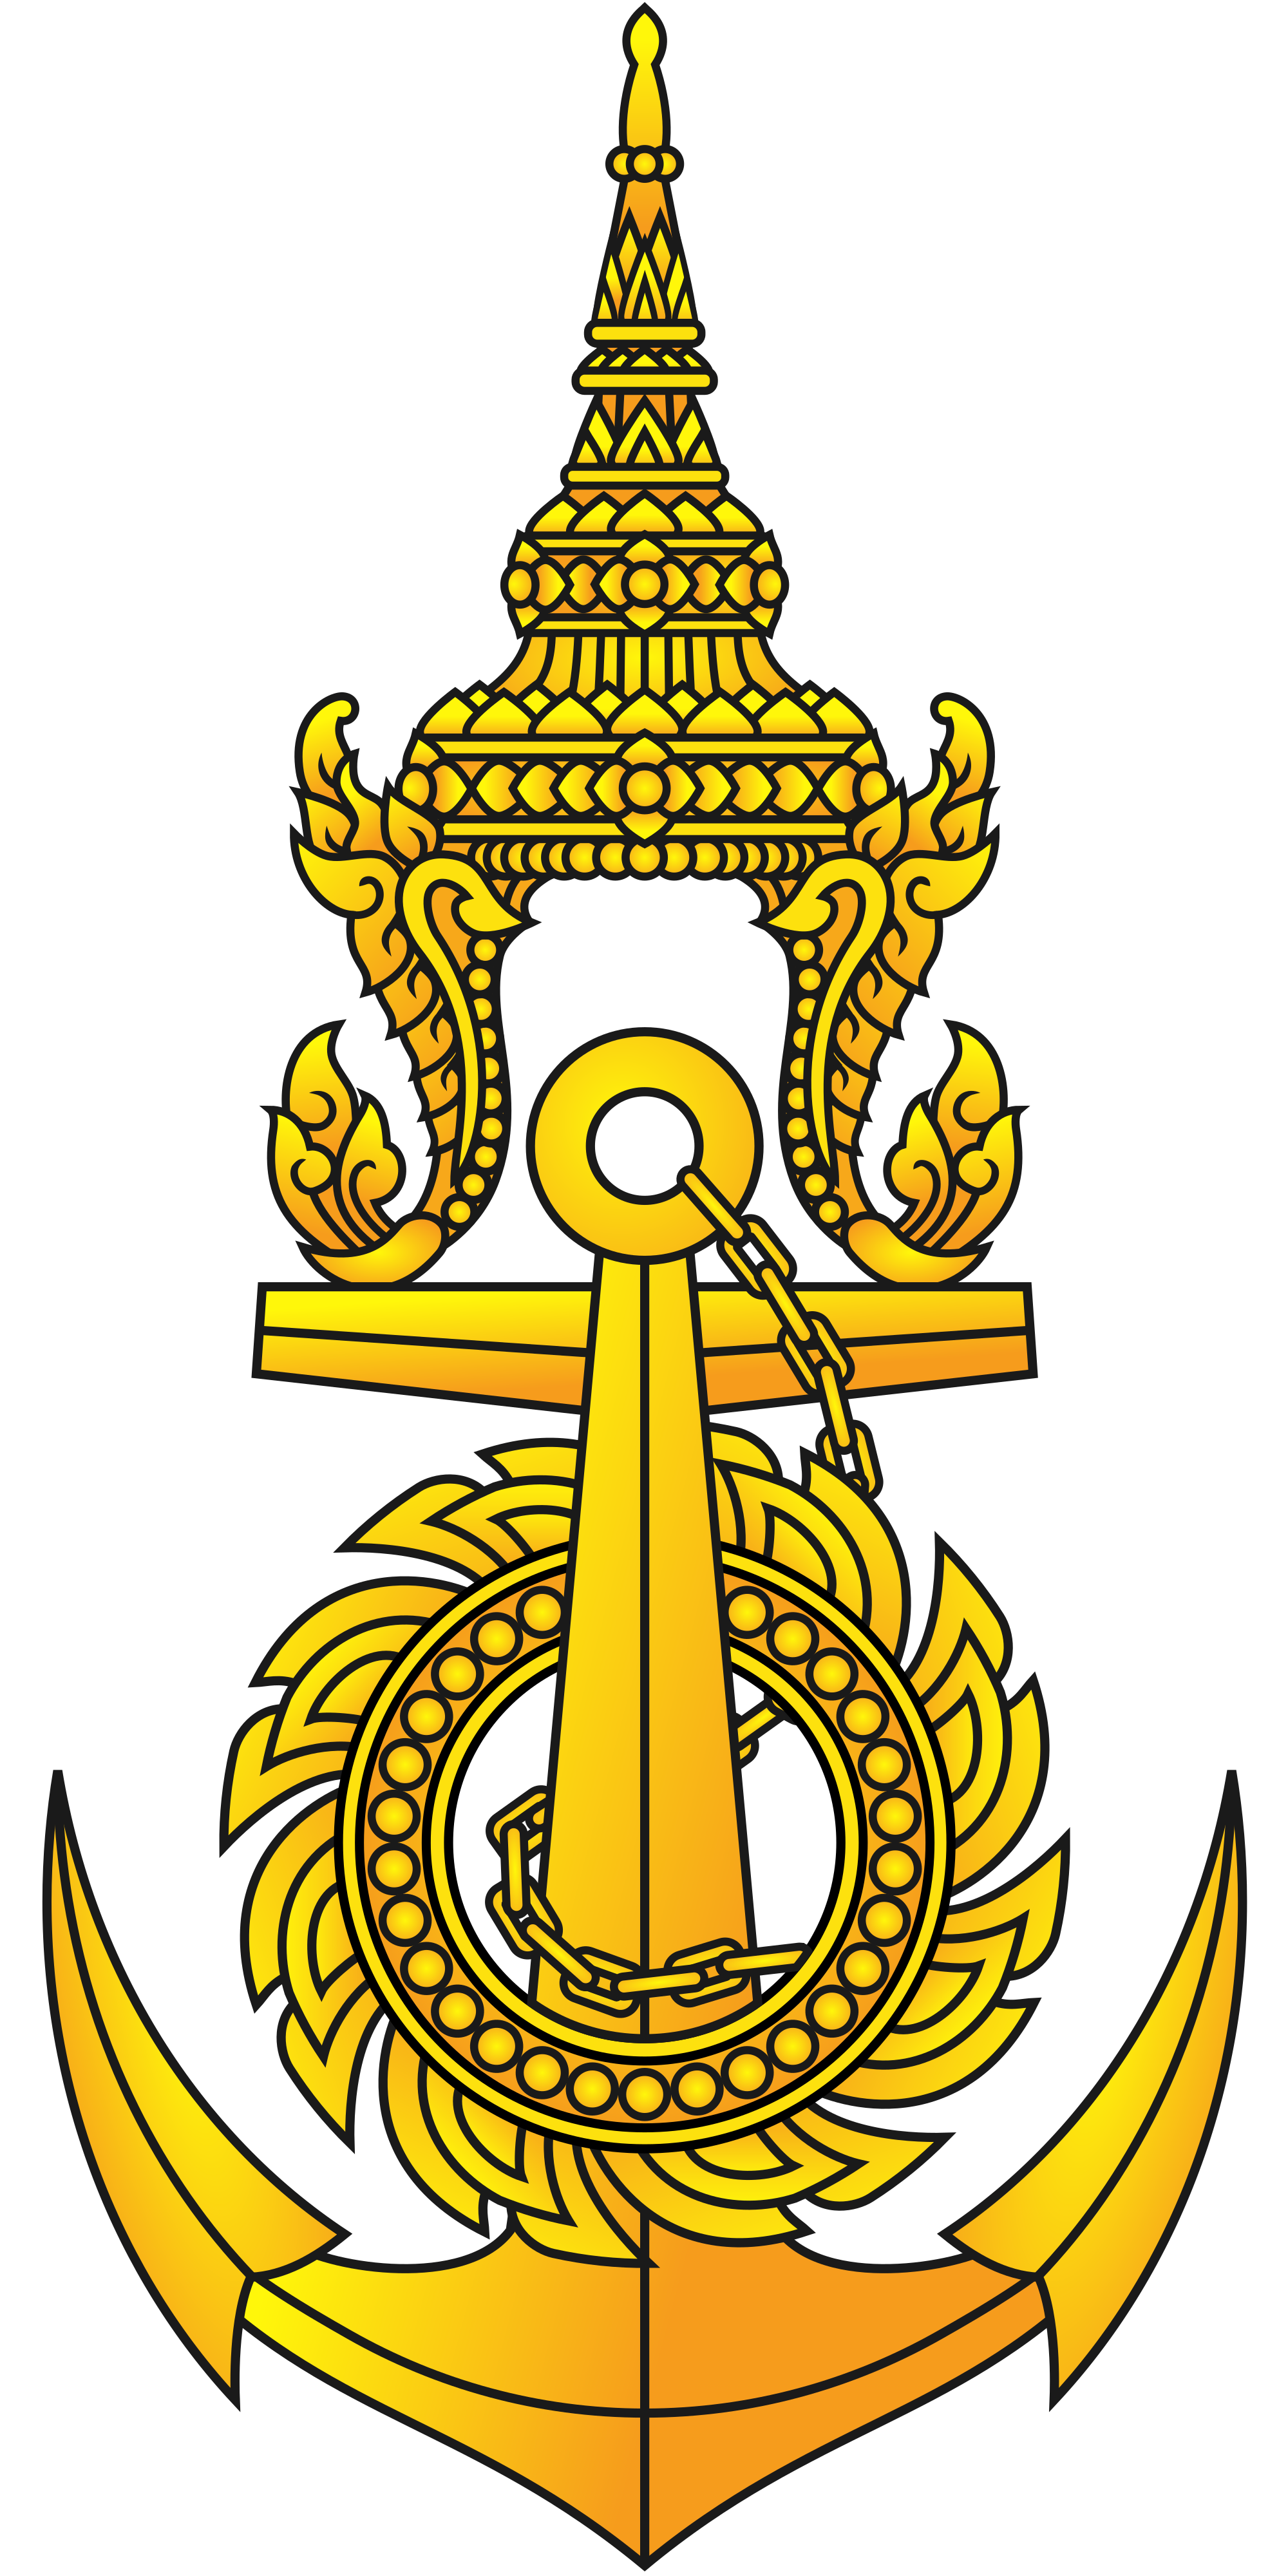 Royal drawing navy seal. Thai wikipedia emblem of